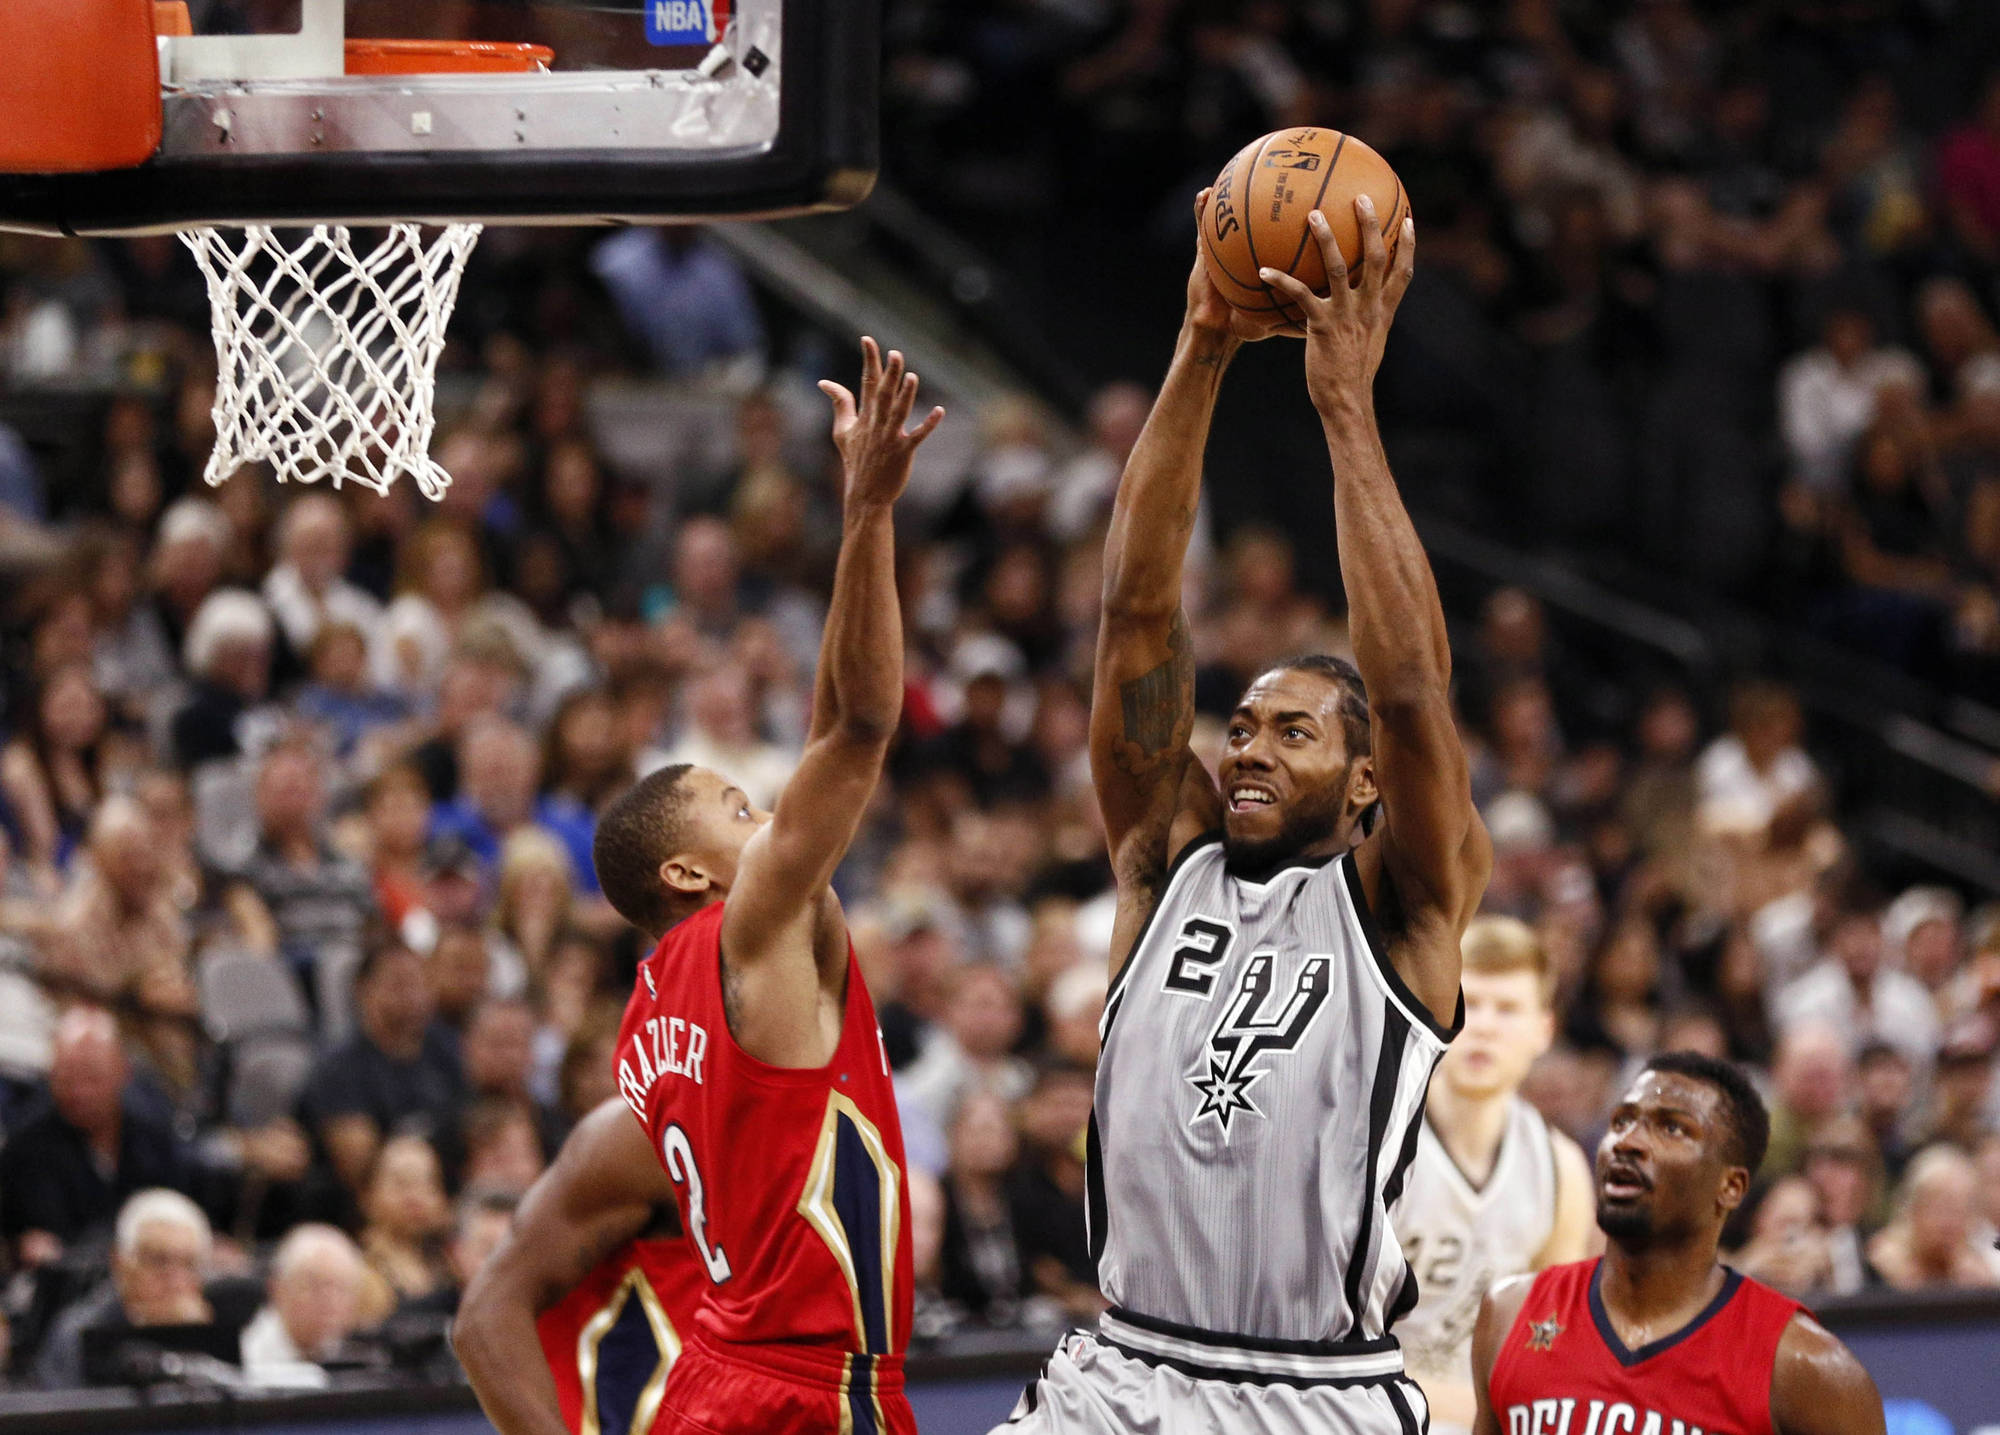 The San Antonio Spurs dominating early